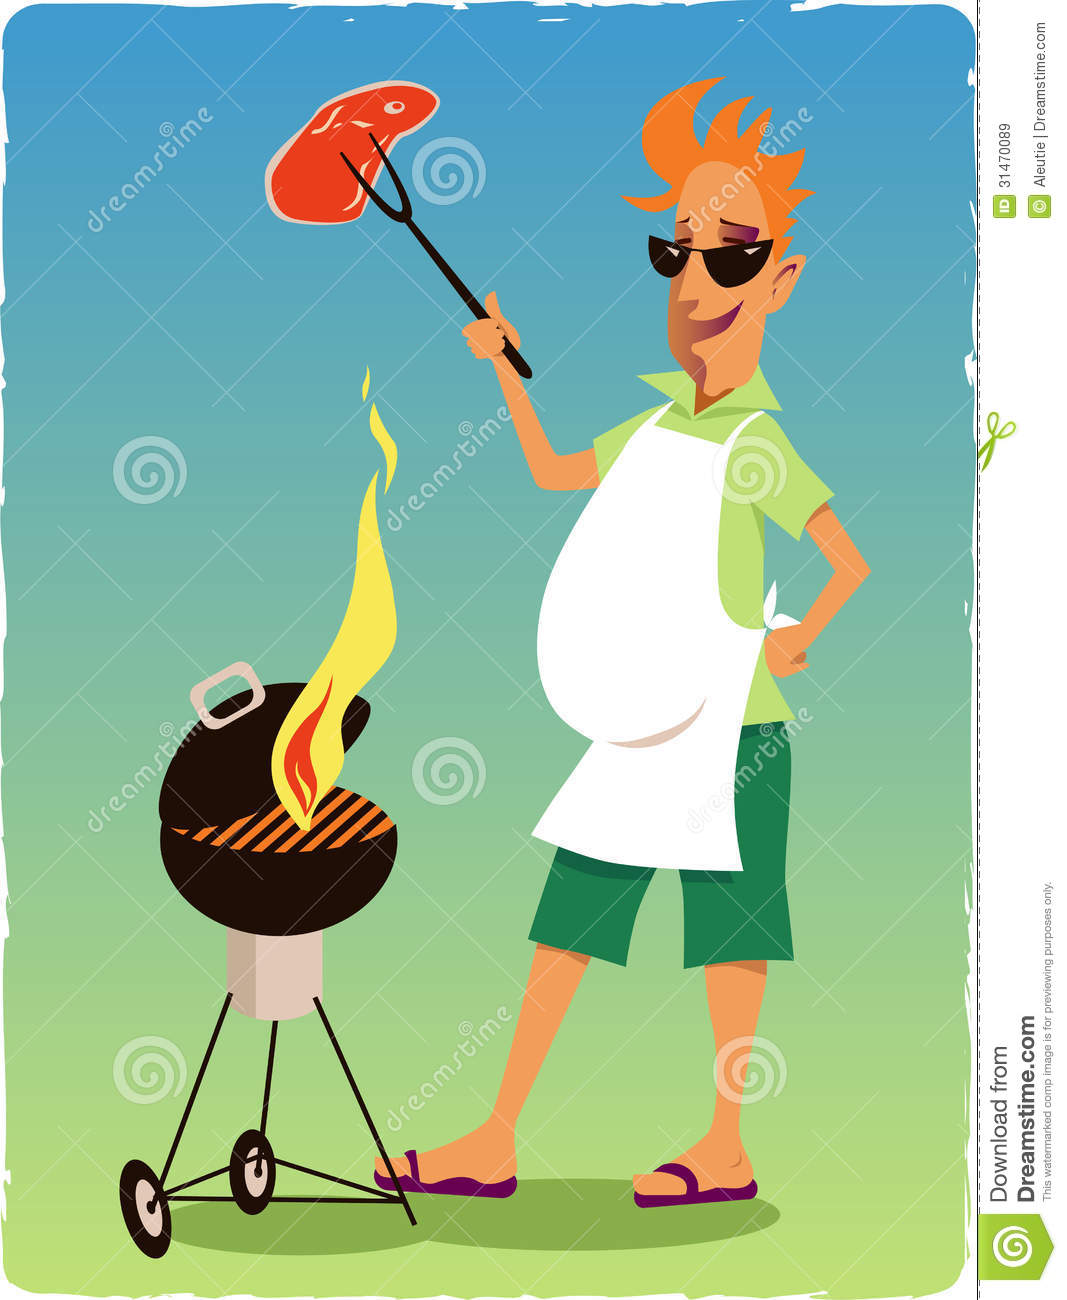 free clipart man grilling - photo #46